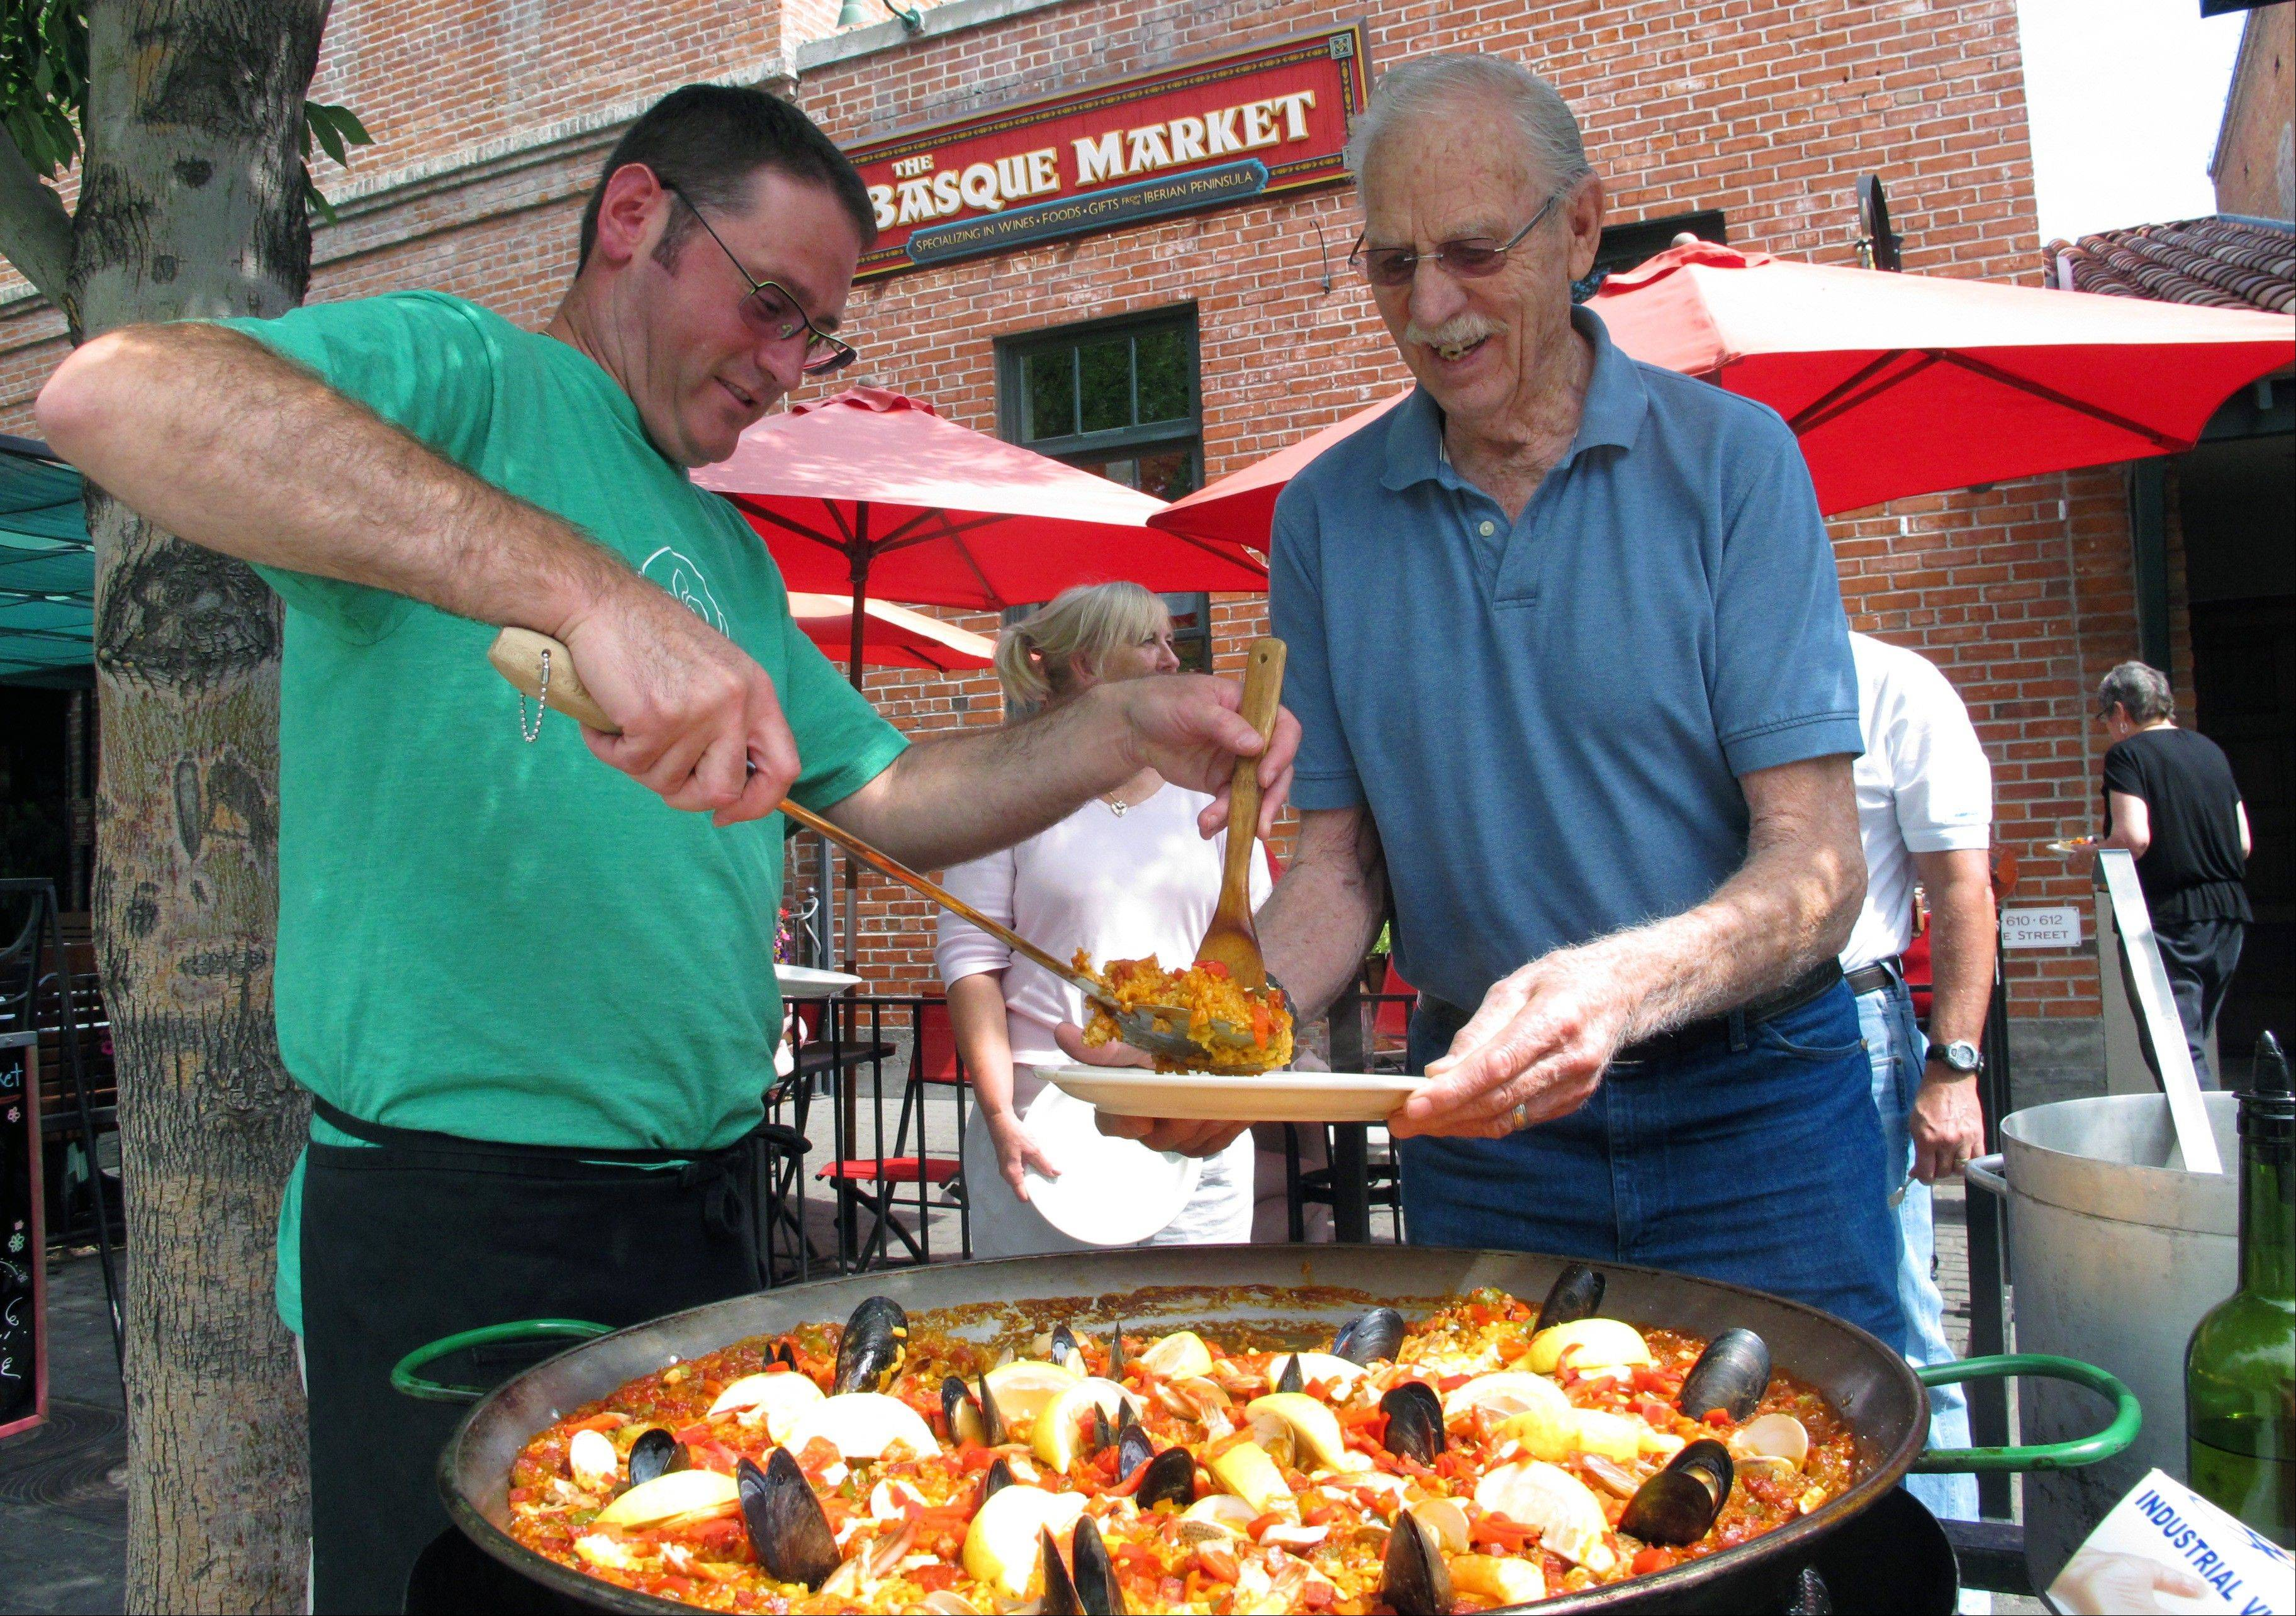 Tony Eiguren, left, owner of the Basque Market, serves a plate of paella to a lunch customer in Boise, Idaho.